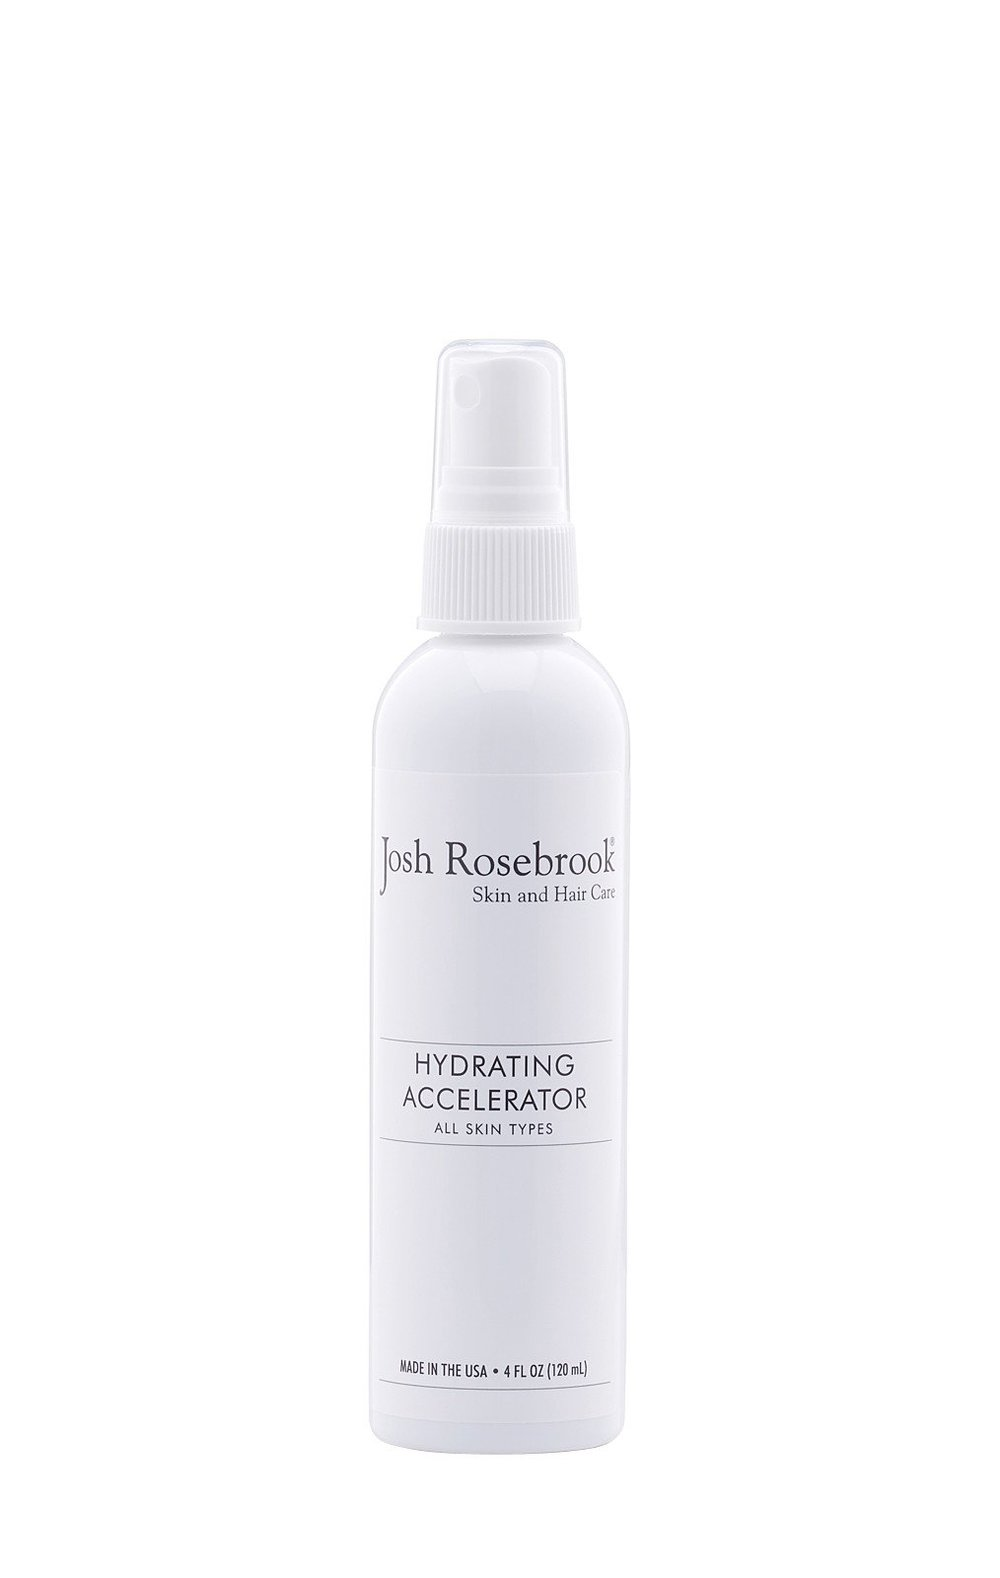 josh_rosebrook_hydrating_accelerator_at_credo_beauty_1080x.jpg